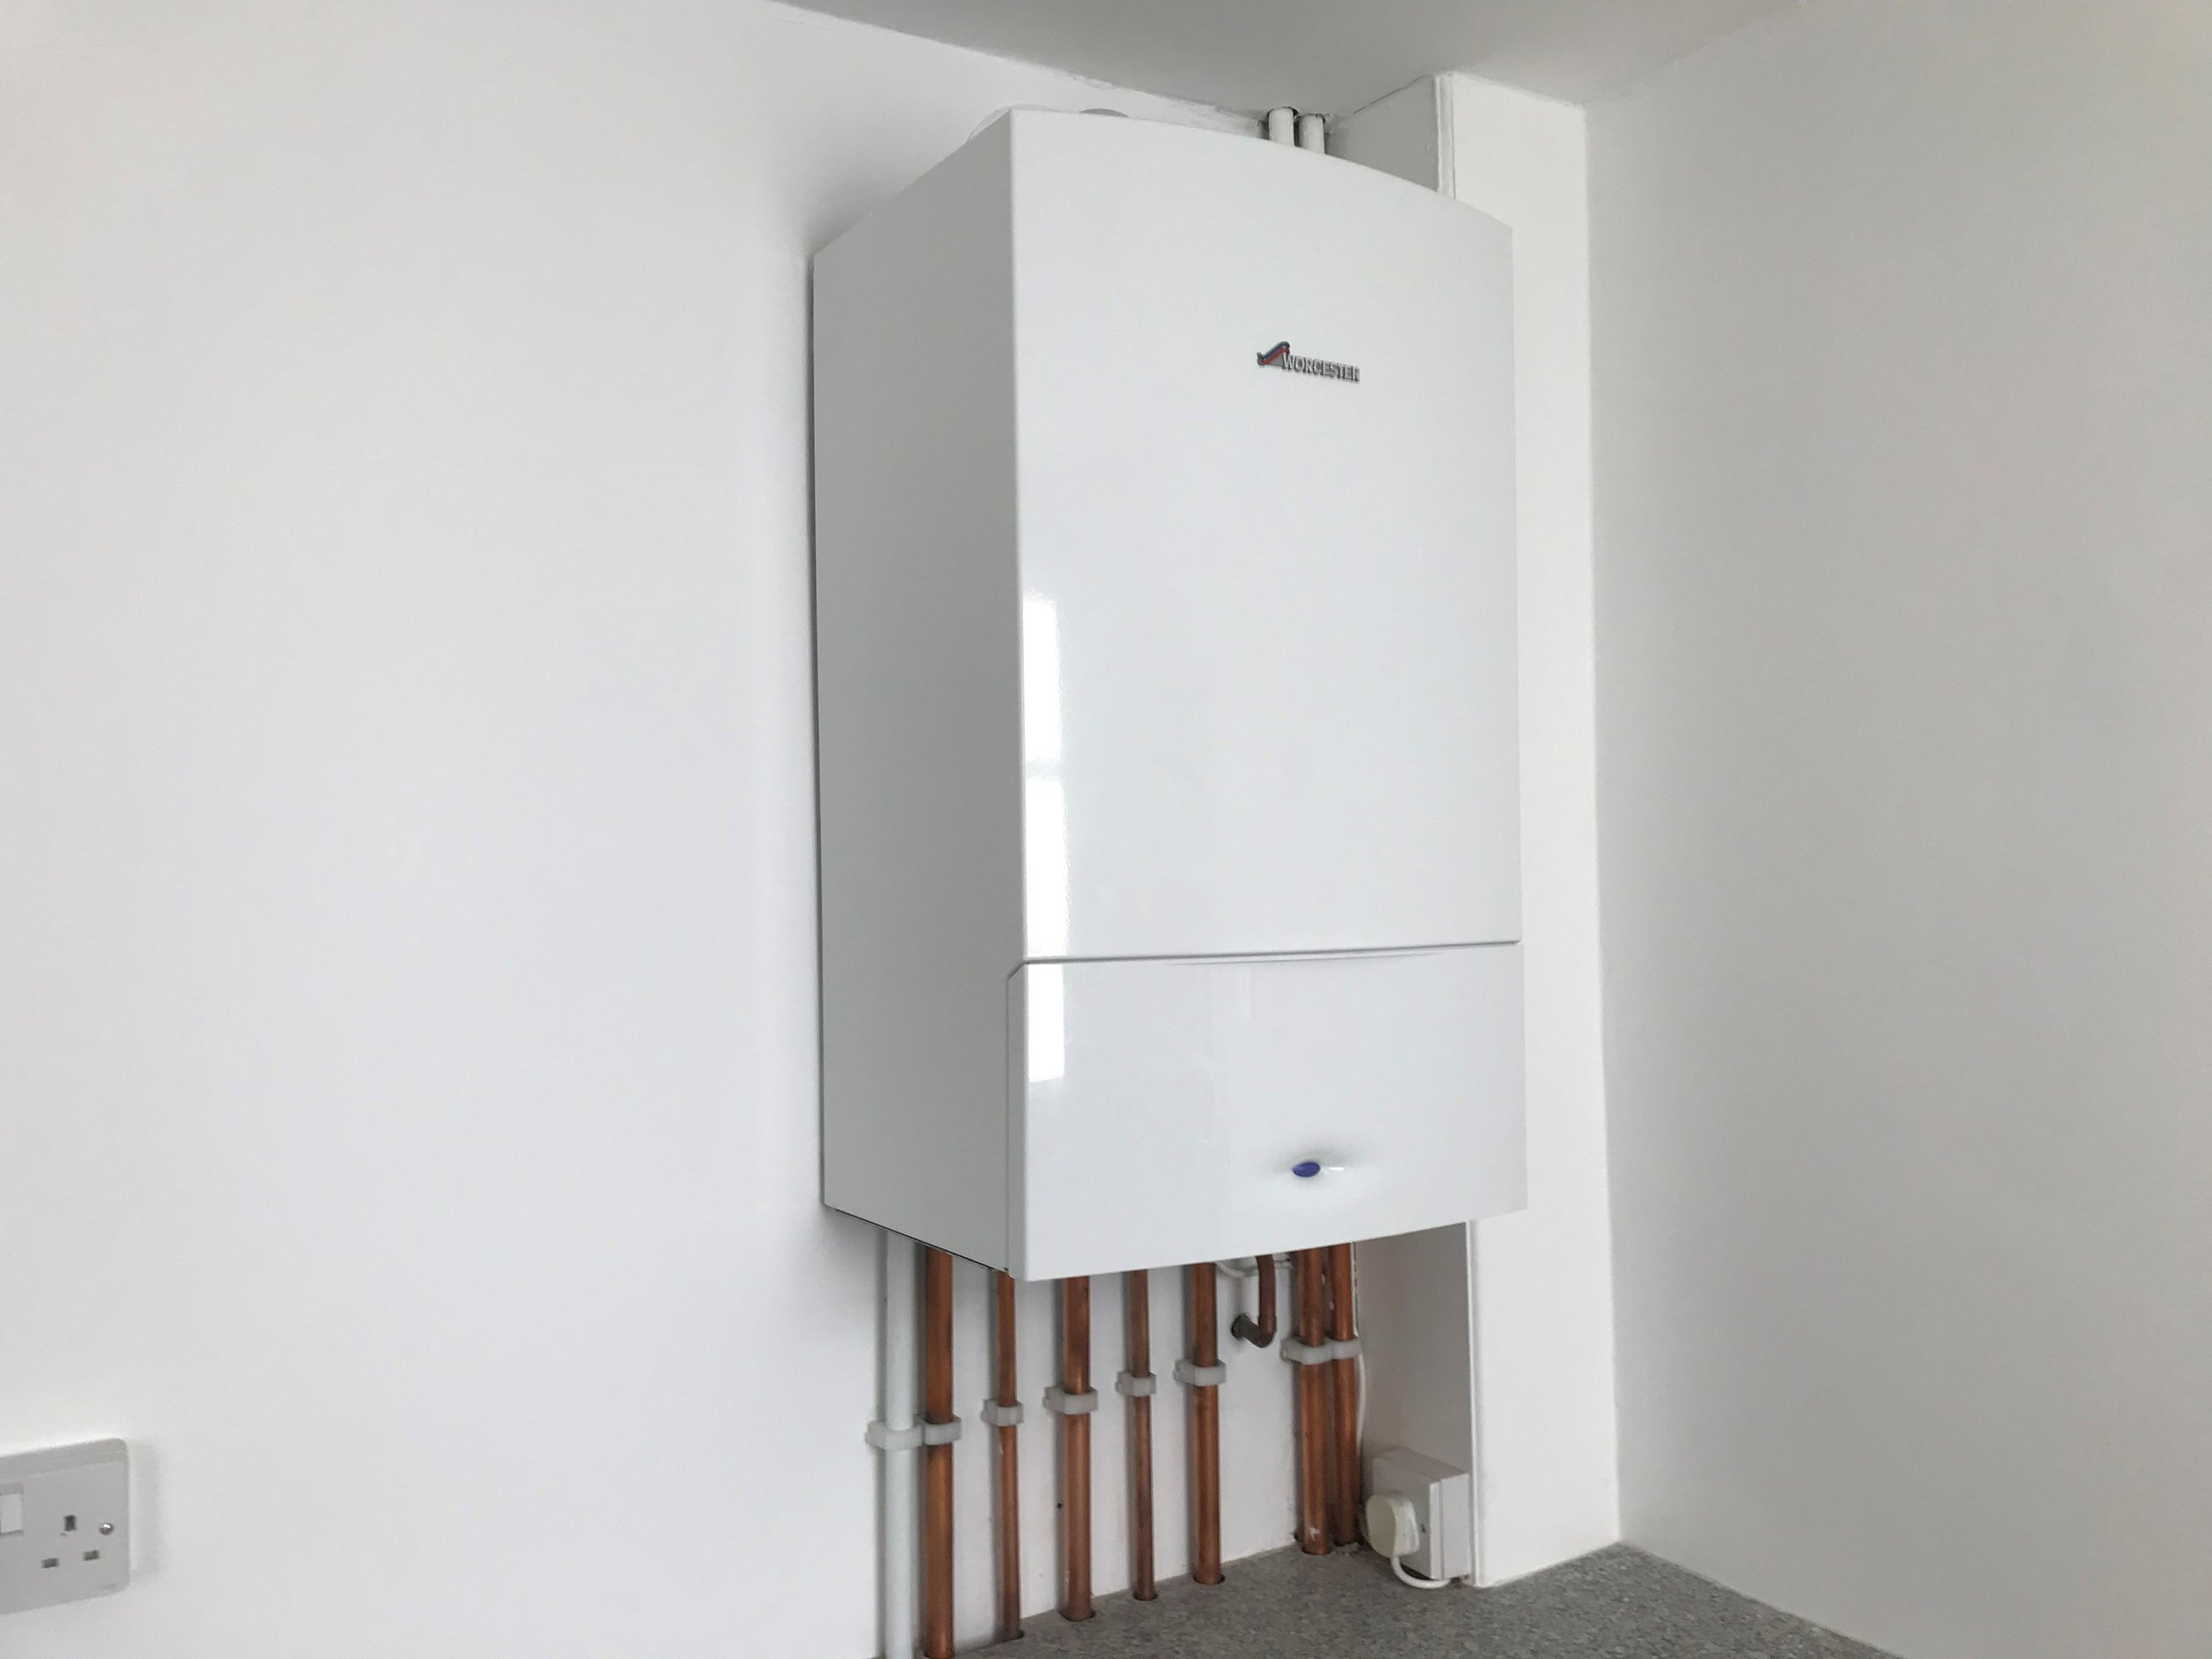 Boiler servicing and installation